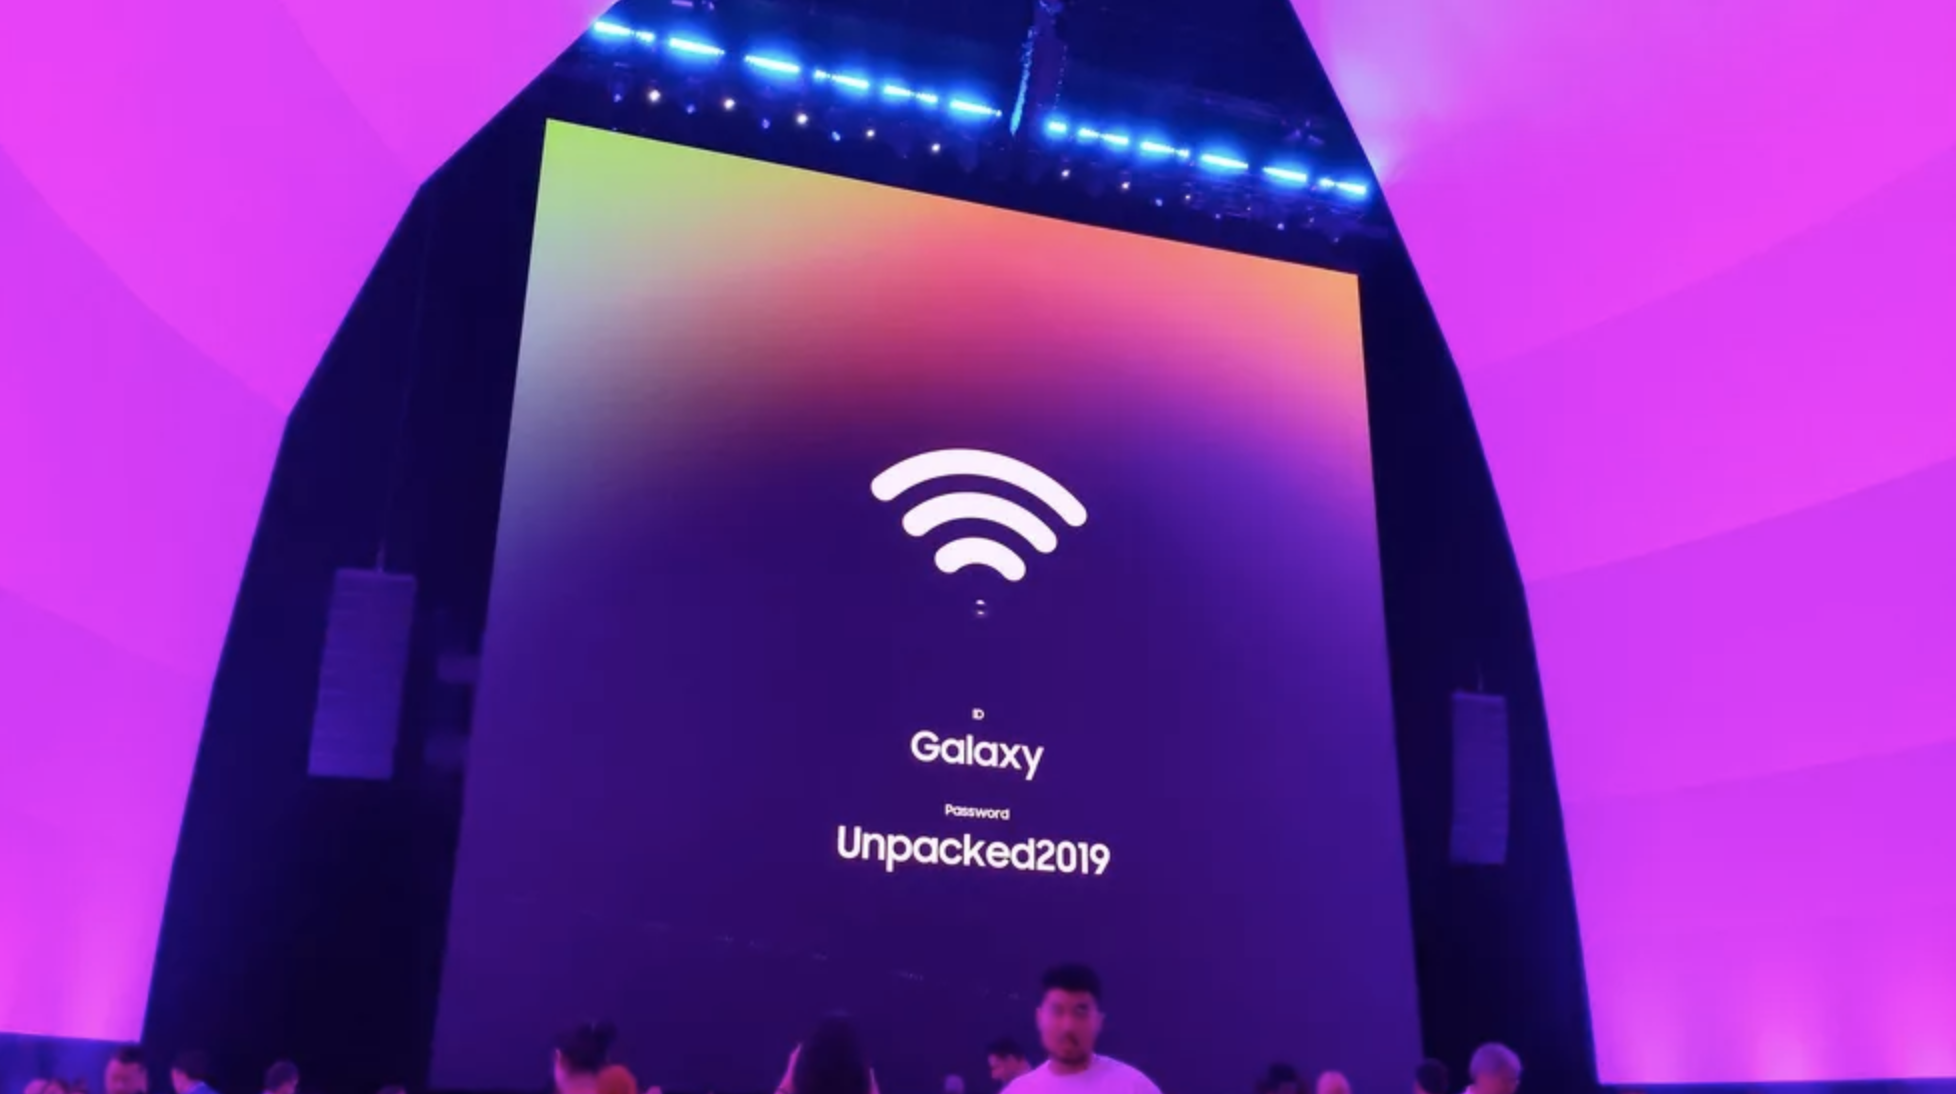 Samsung unpacked its Galaxy Note 10 and Note 10 Plus